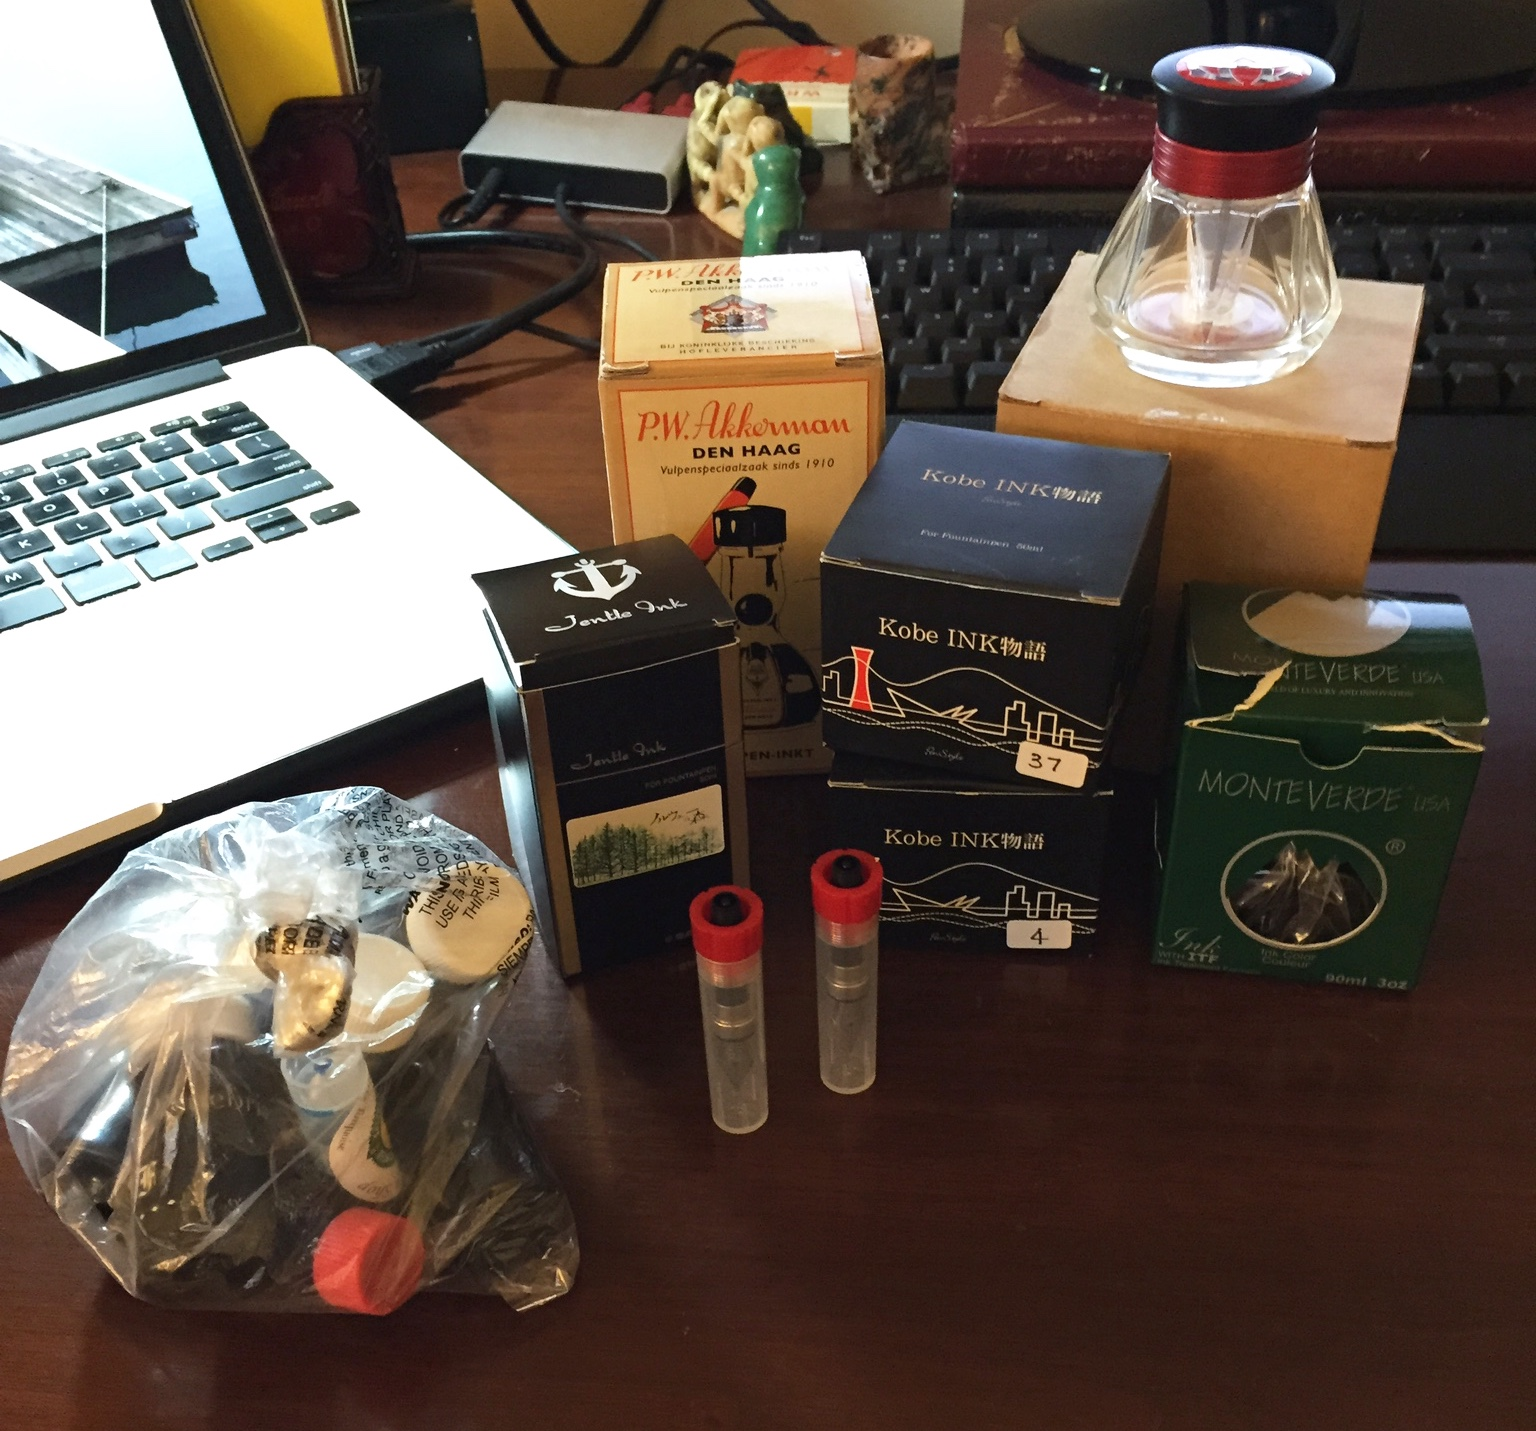 My haul from a recent pen show.